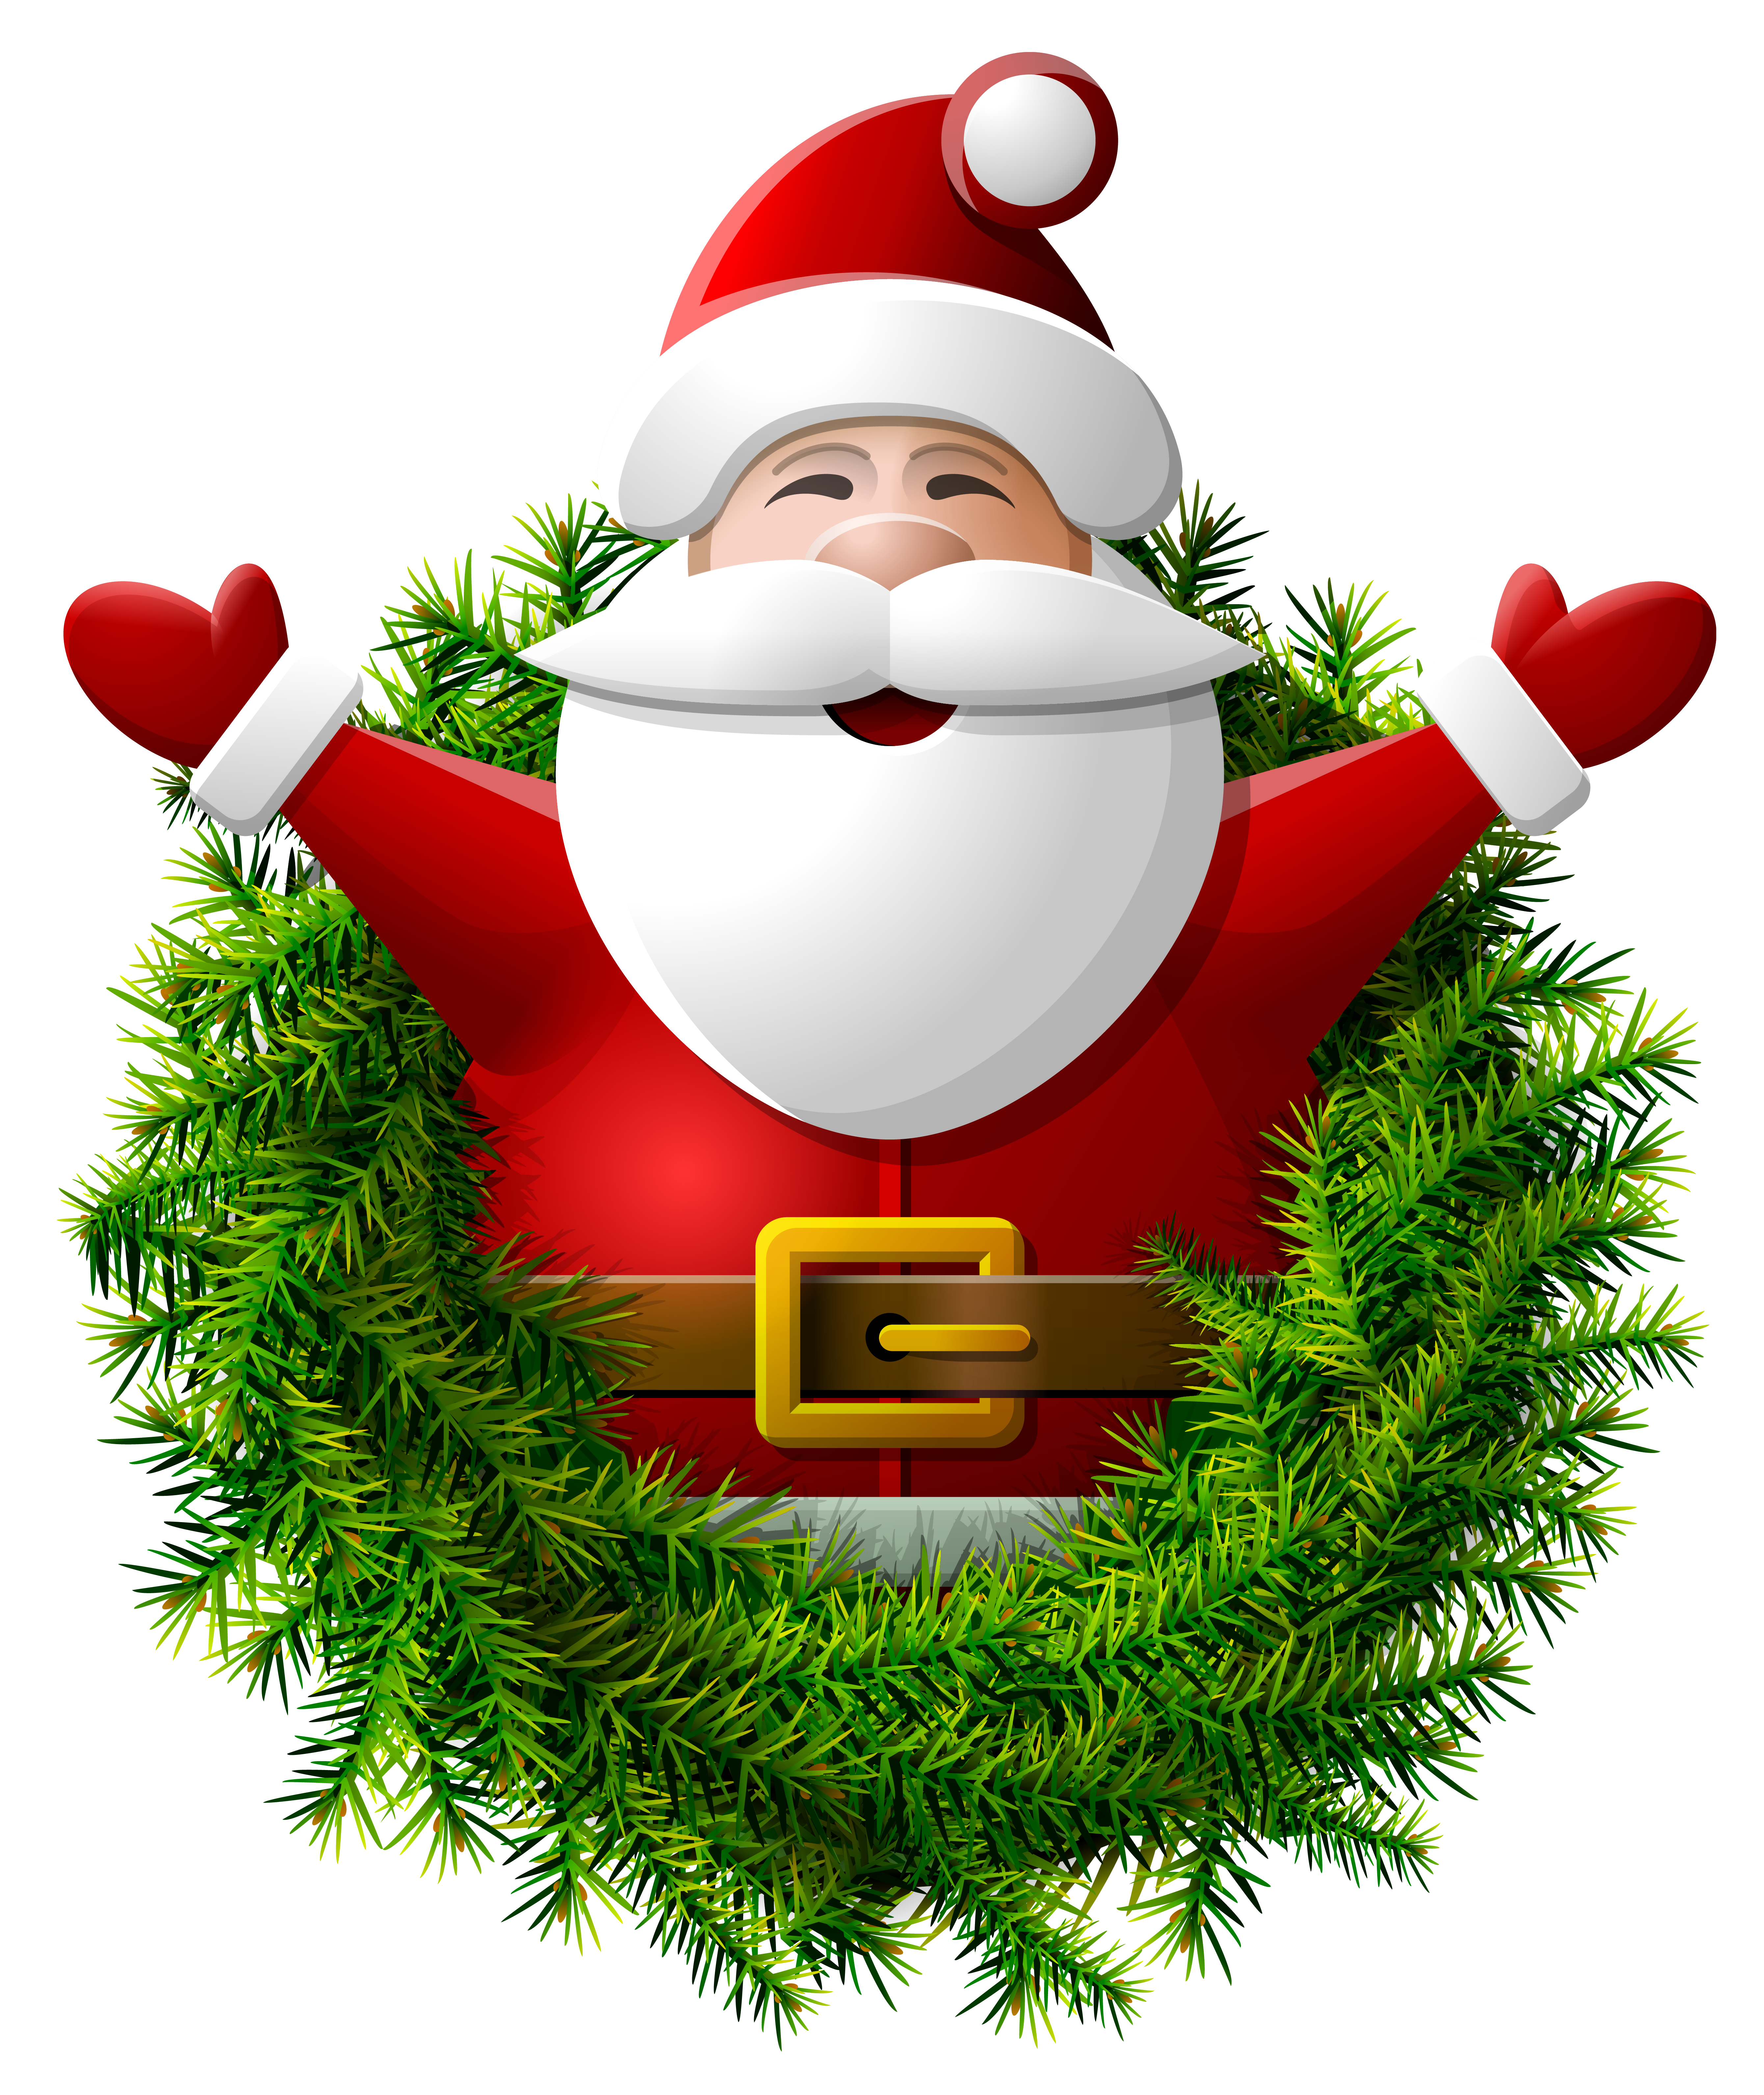 Sprout clipart christmas cartoon. Santa claus wreath png